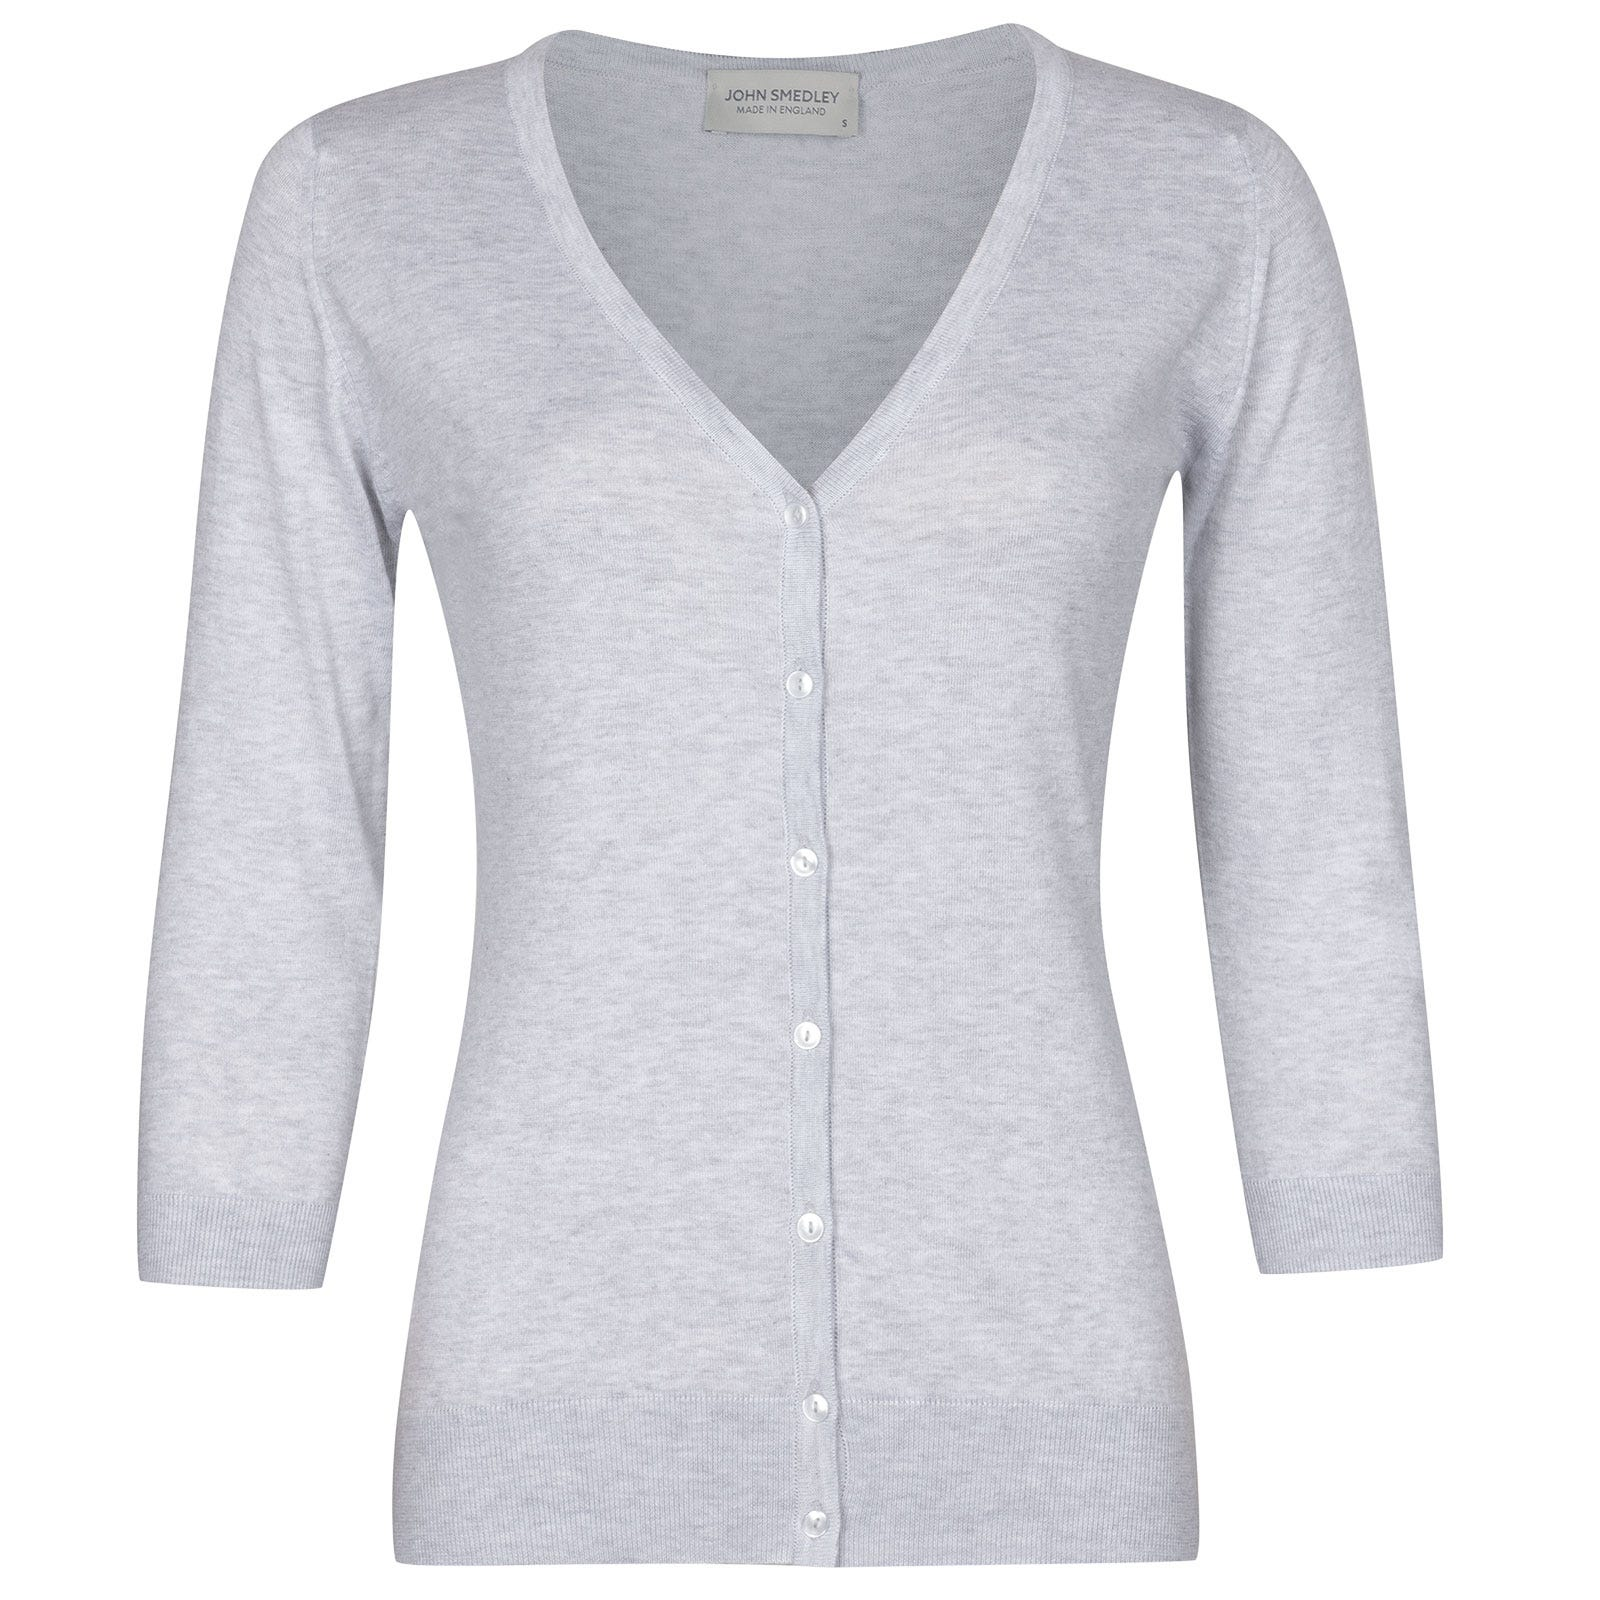 John Smedley Maida in Feather Grey Cardigan-XLG